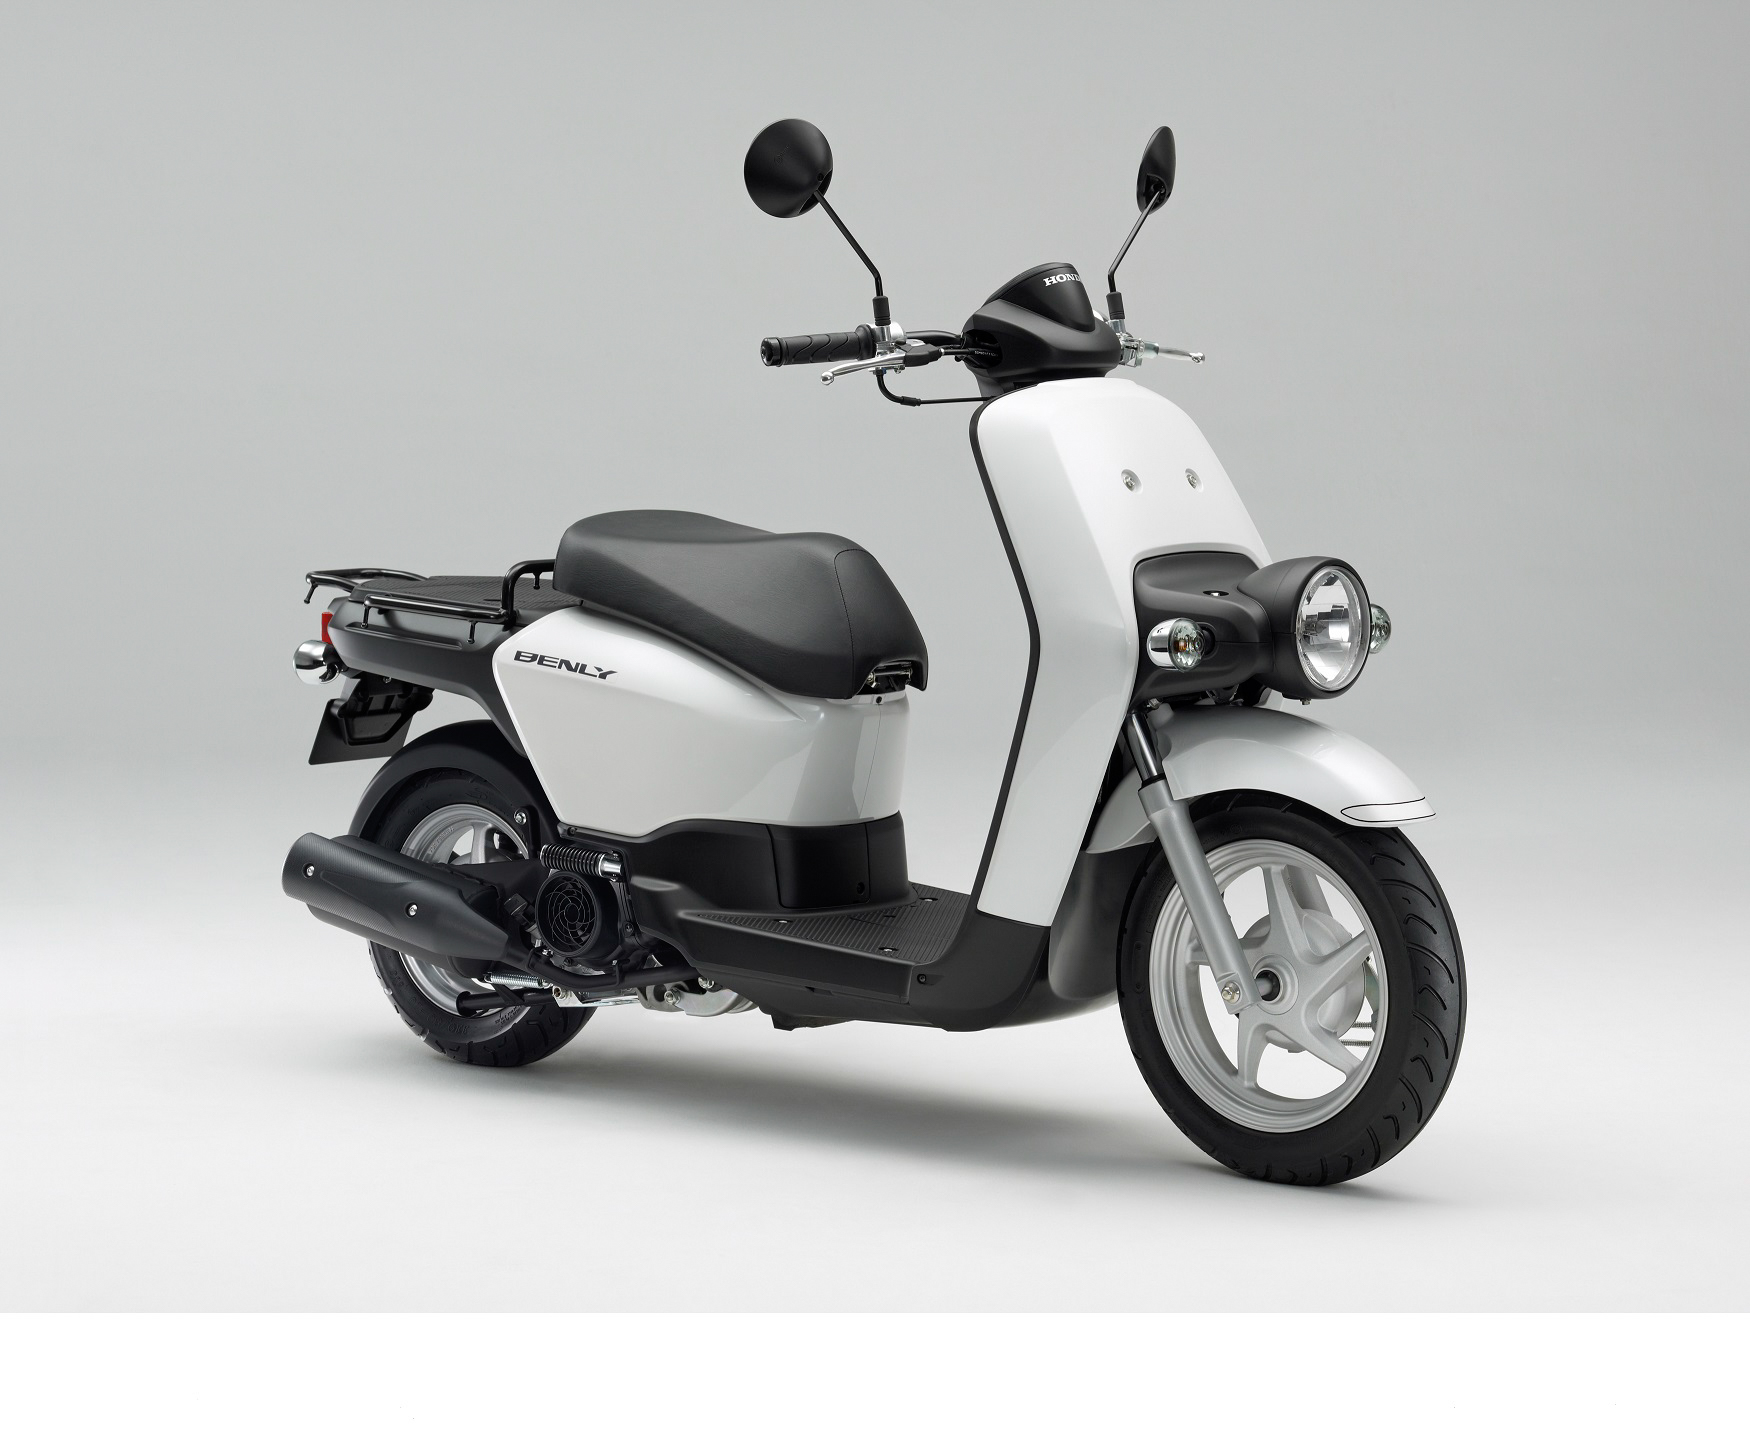 2016 Honda Benly